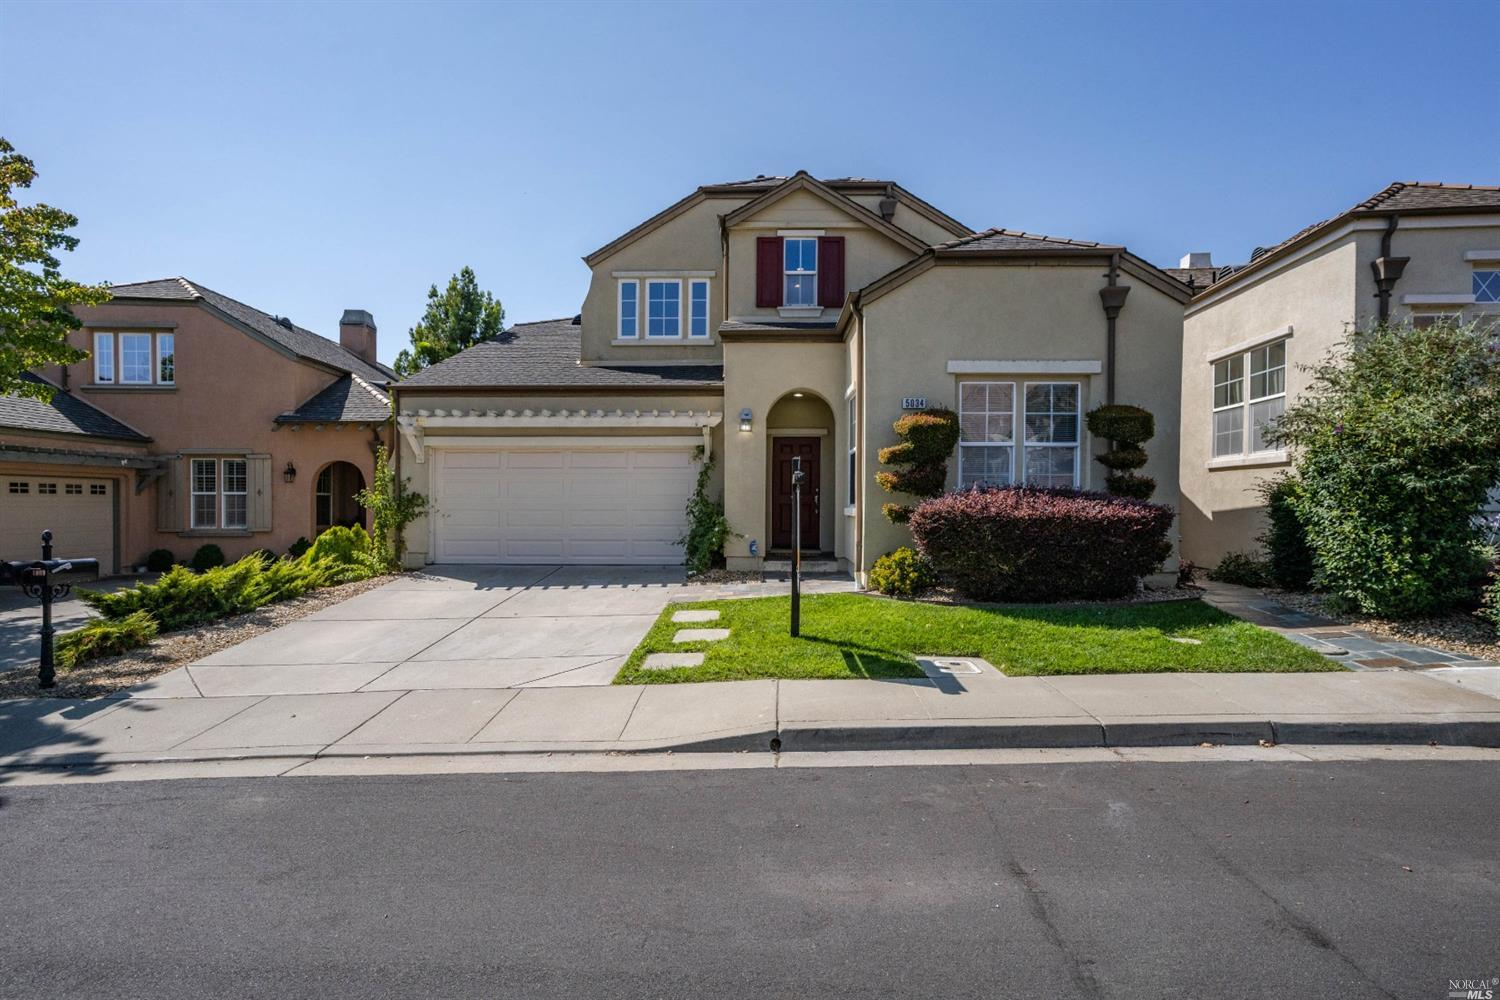 Beautiful home in the desirable golfing community of Hiddenbrooke. New Carpet, paint and appliances.